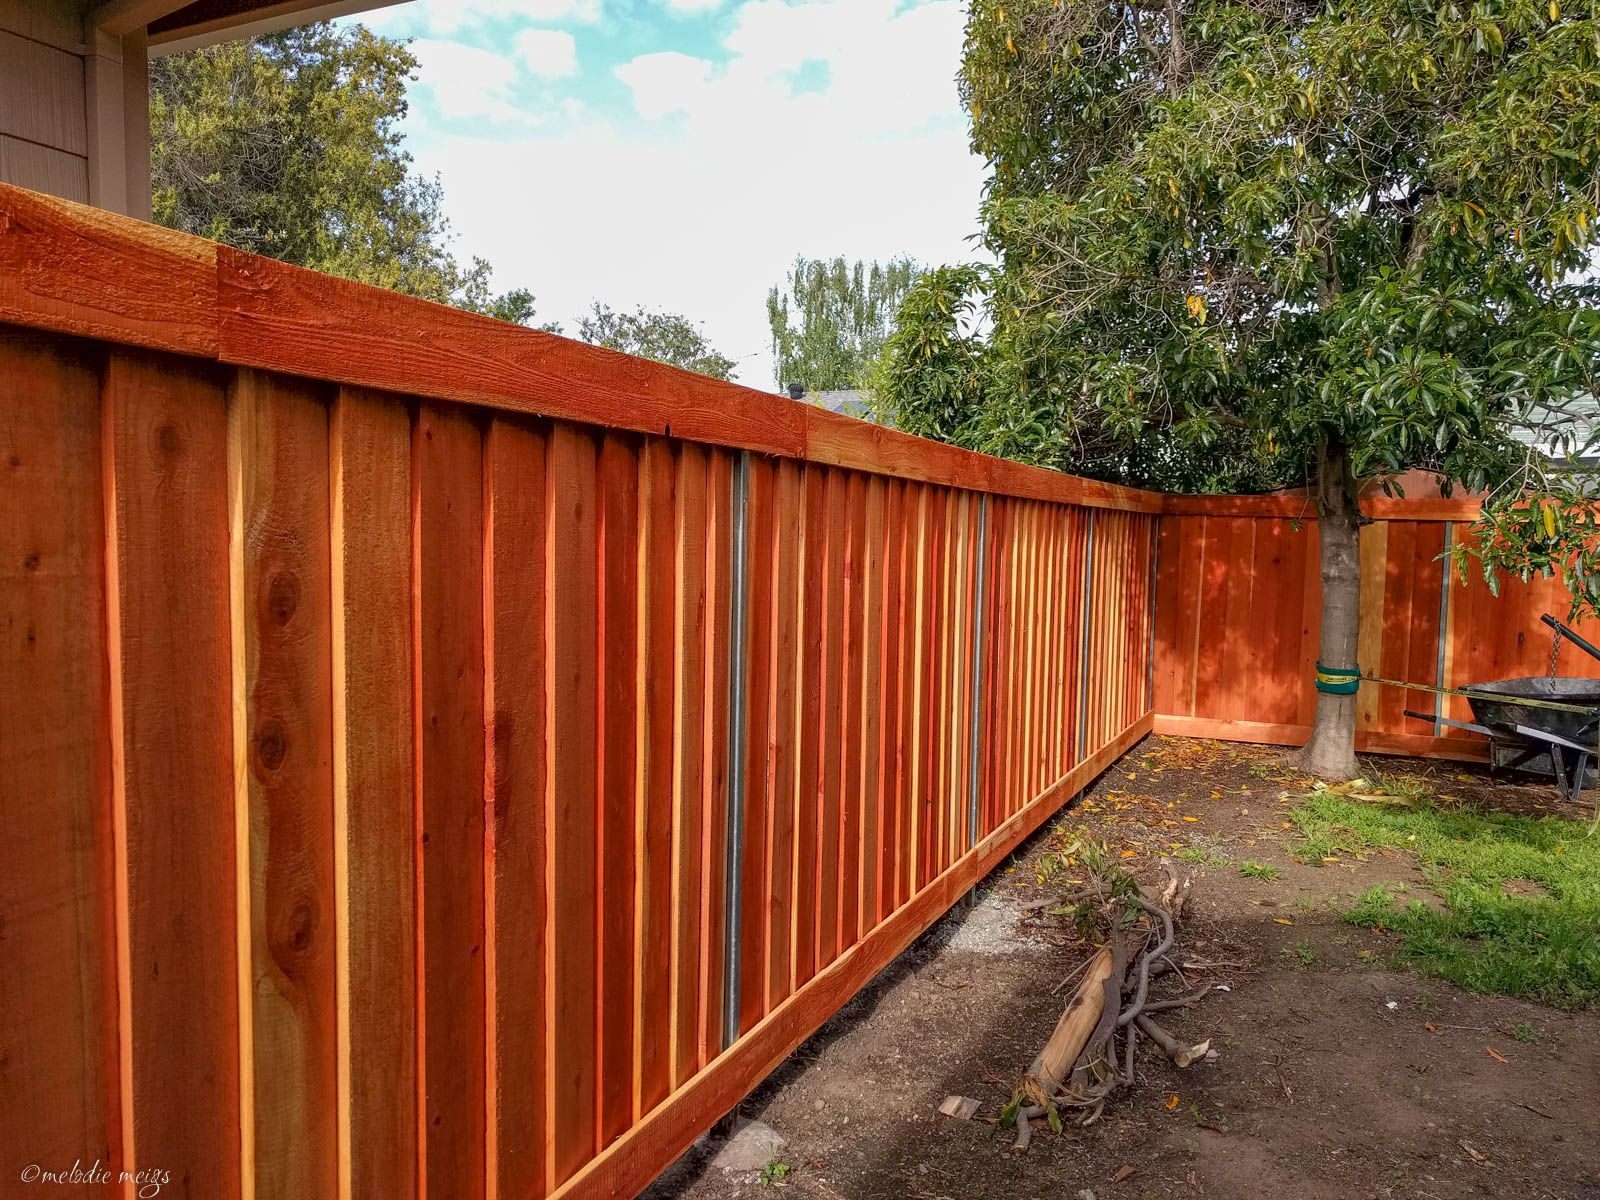 How To Guide For Building A Gorgeous Modern Good Neighbor Fence Yourself Making It Look Consistent Down The Good Neighbor Fence Fence Design Building A Fence